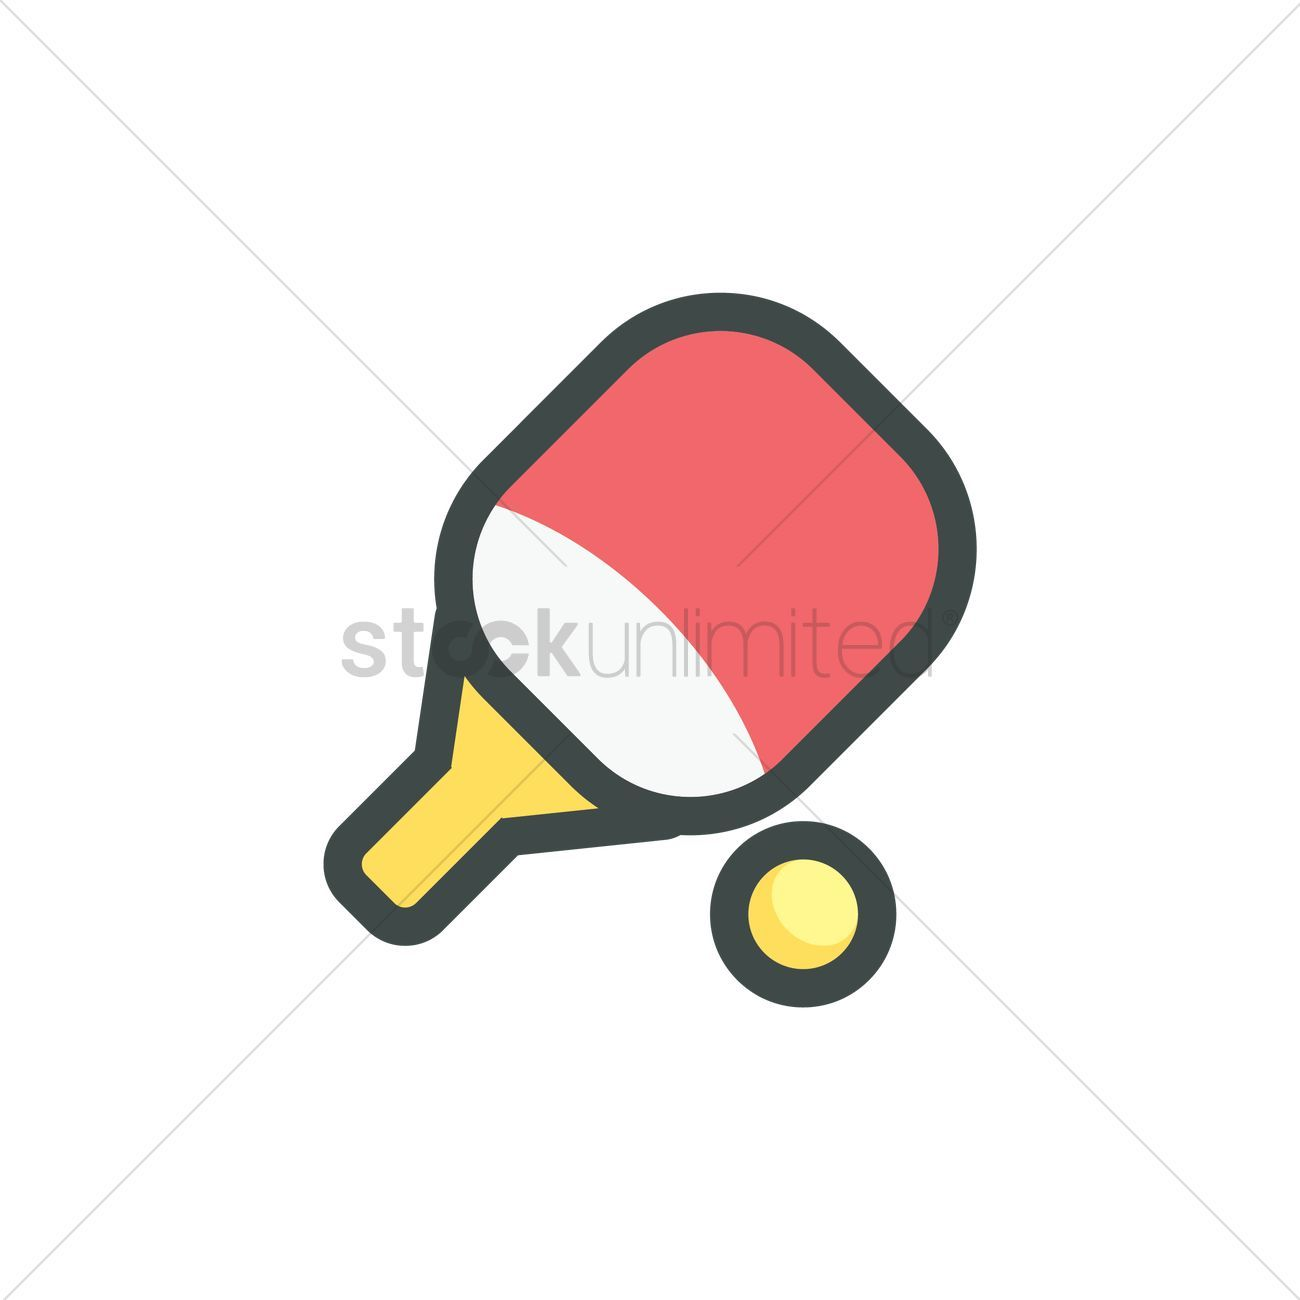 Table Tennis Racket And Ball Vector Illustration Aff Racket Tennis Table Illustration Vector Affil In 2020 Table Tennis Racket Table Tennis Tennis Racket